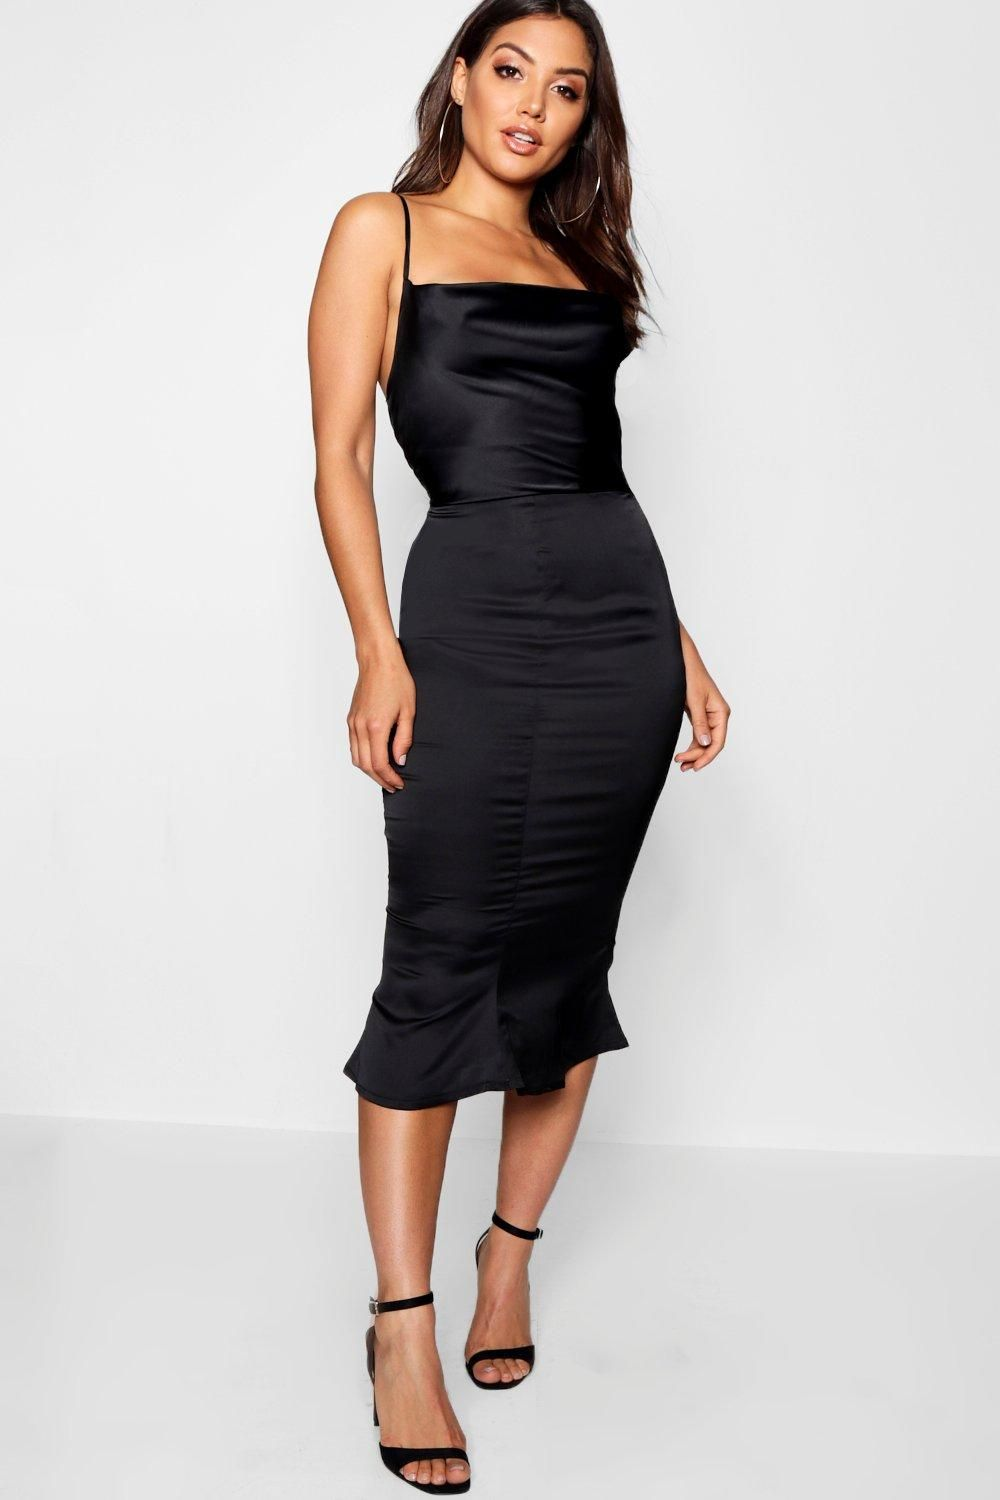 872e12b3e43e Click here to find out about the Satin Cowl Neck Lace Up Fish Tail Midi  Dress from Boohoo, part of our latest Dresses collection ready to shop  online today!